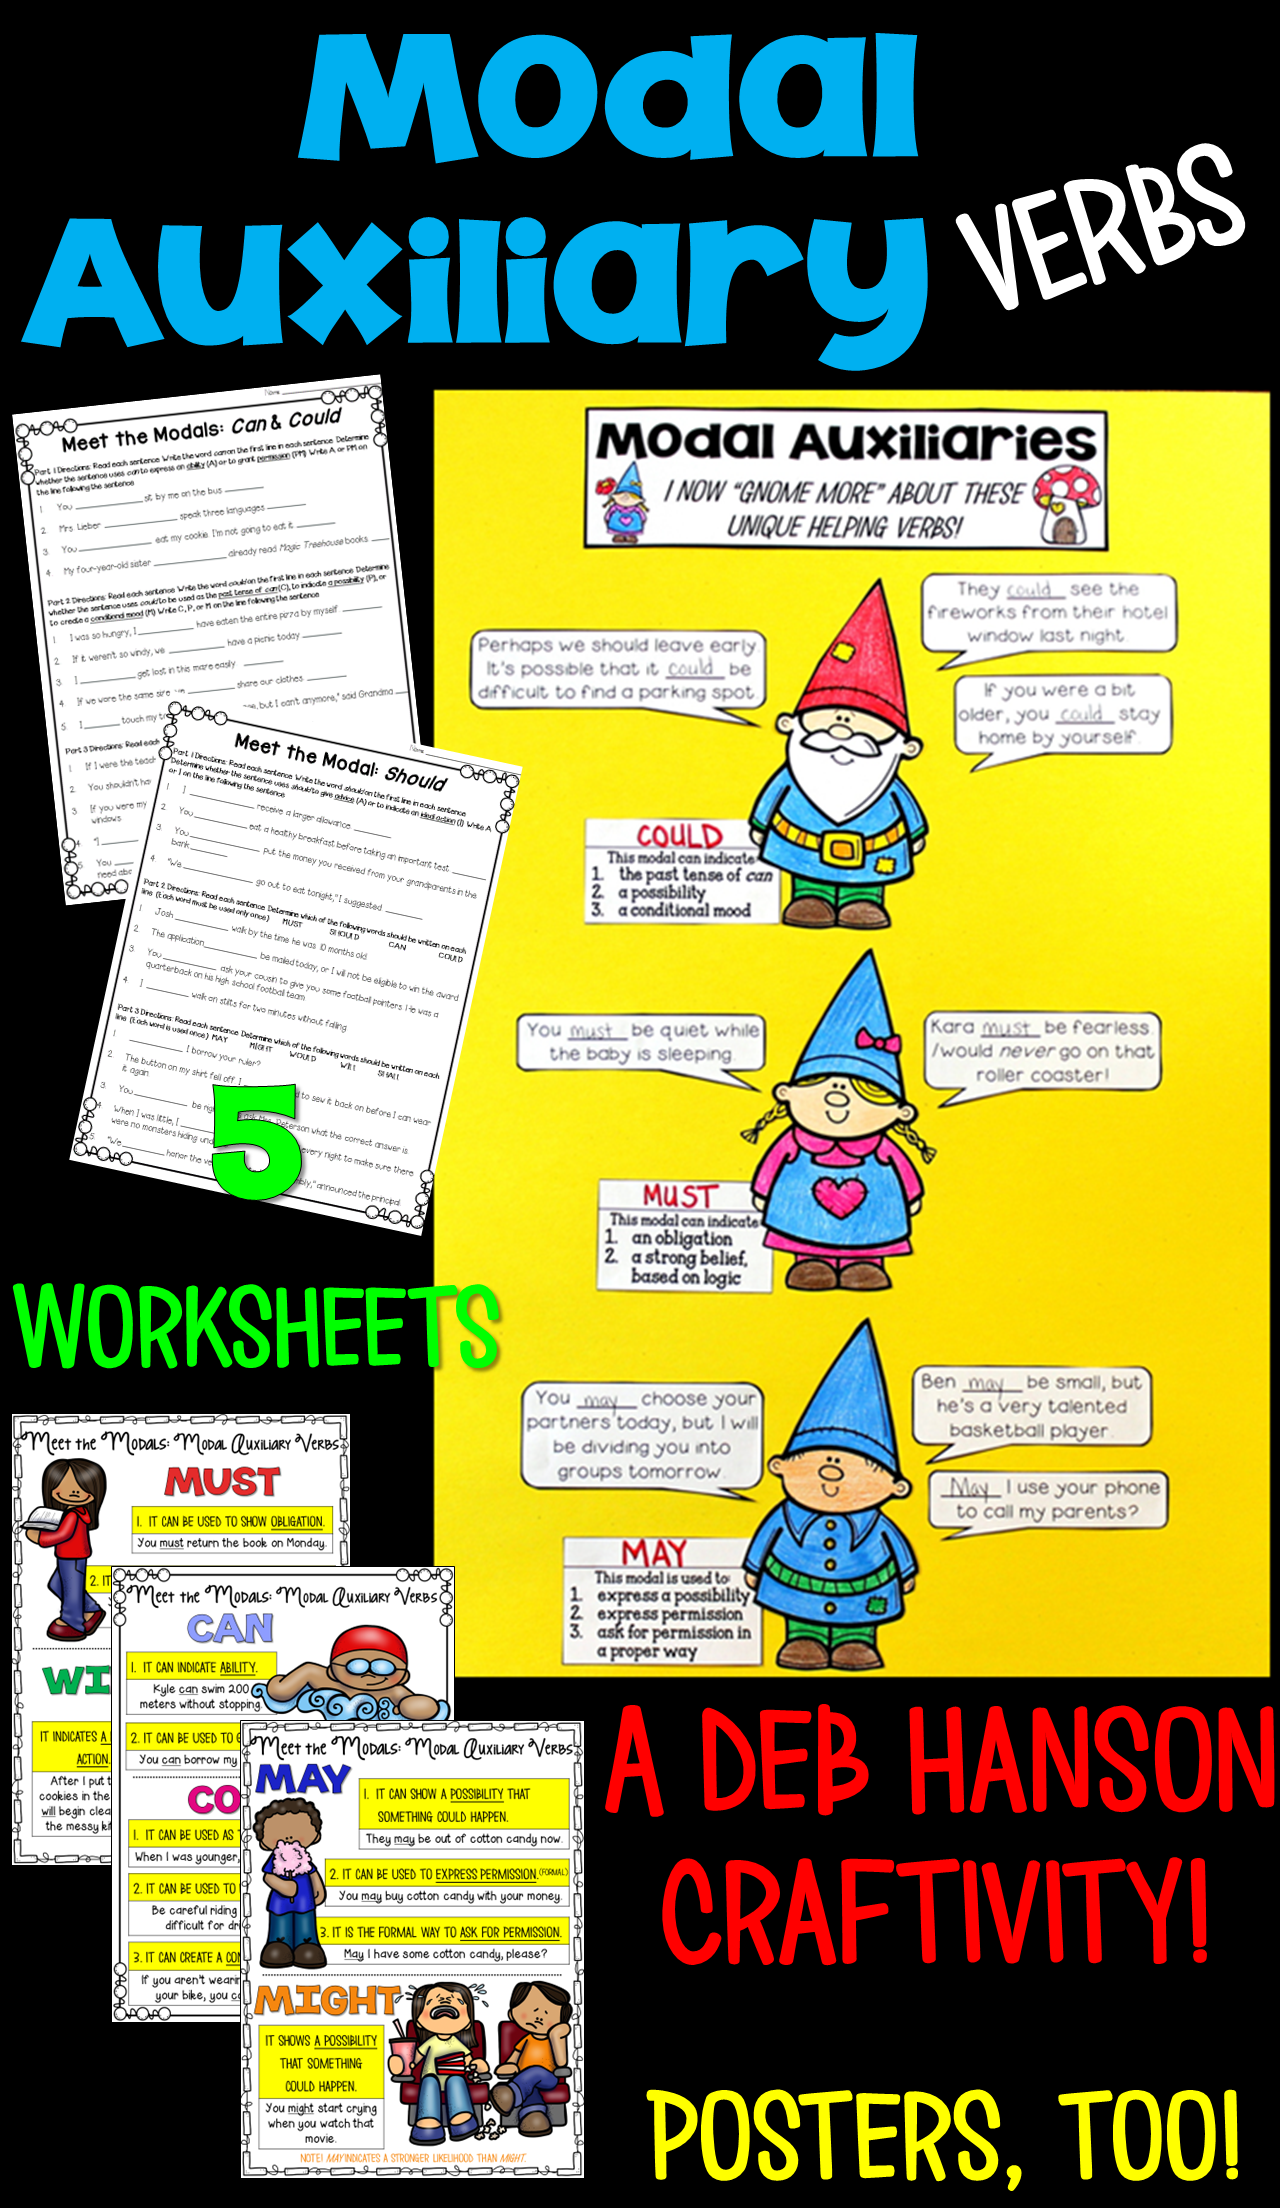 Modal Auxiliaries Worksheets Craftivity Amp Posters